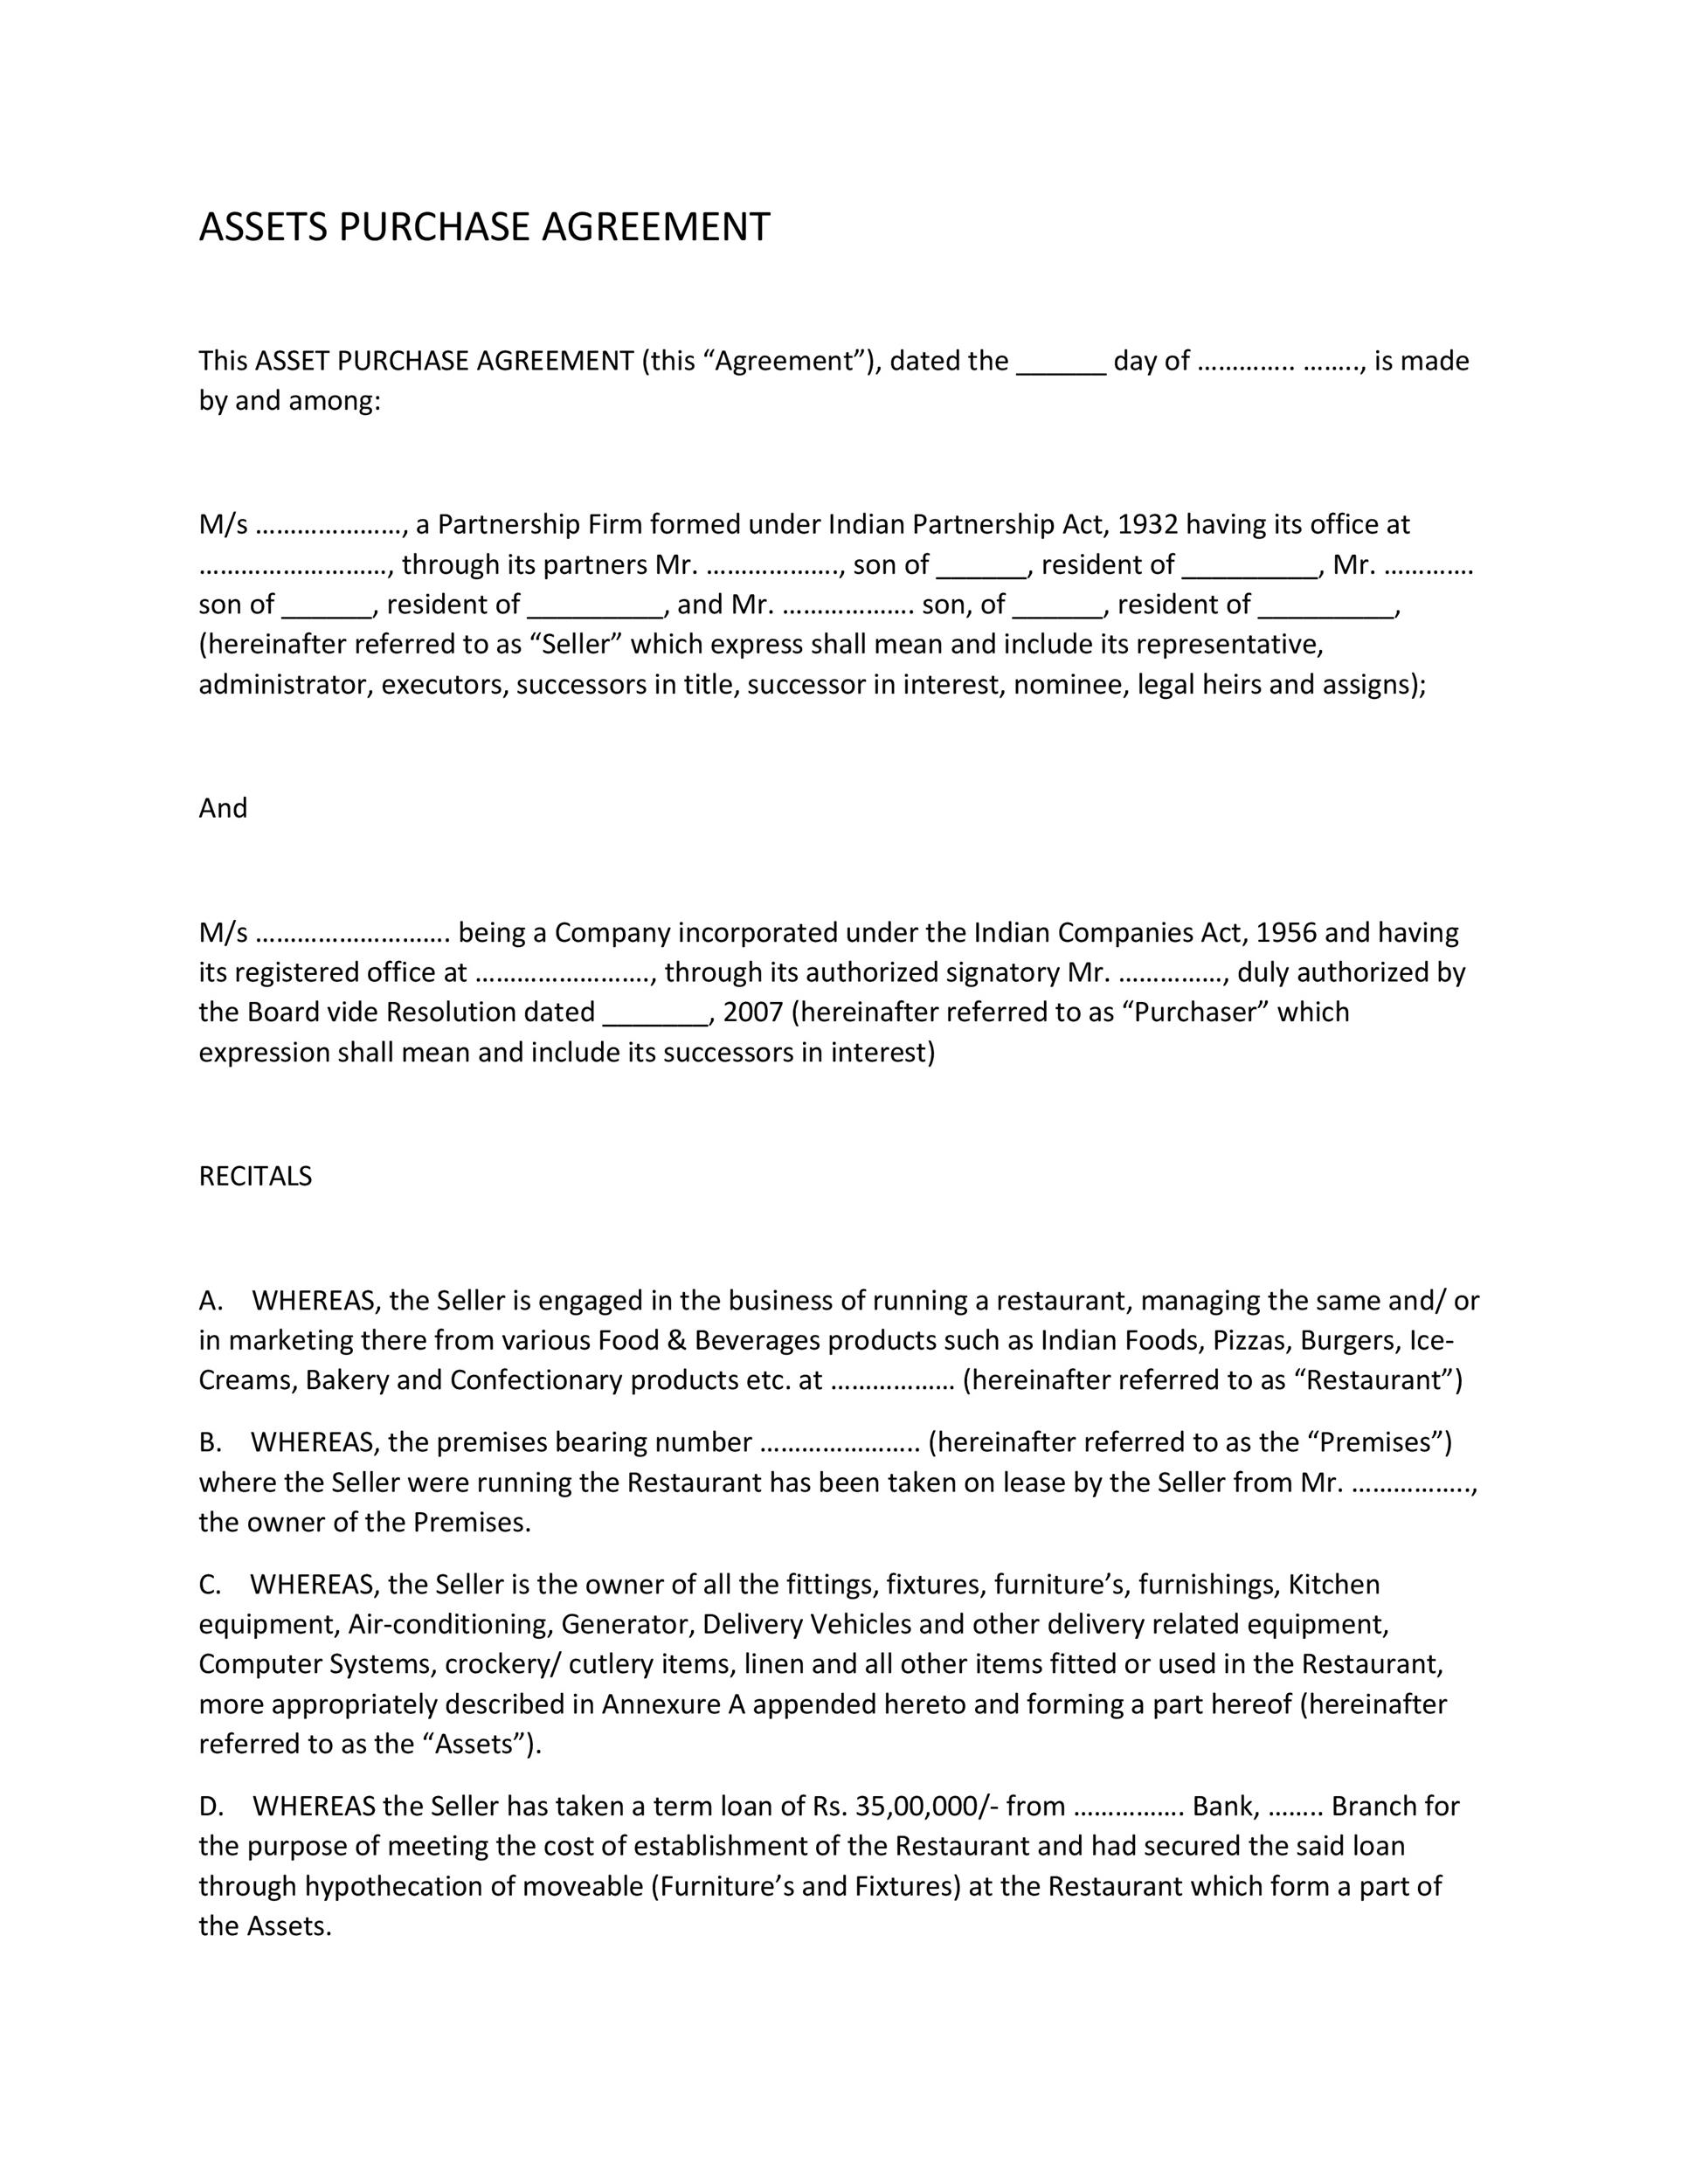 Business Agreement Form 12 Best Images Of Free Sample Partnership - sample business purchase agreement